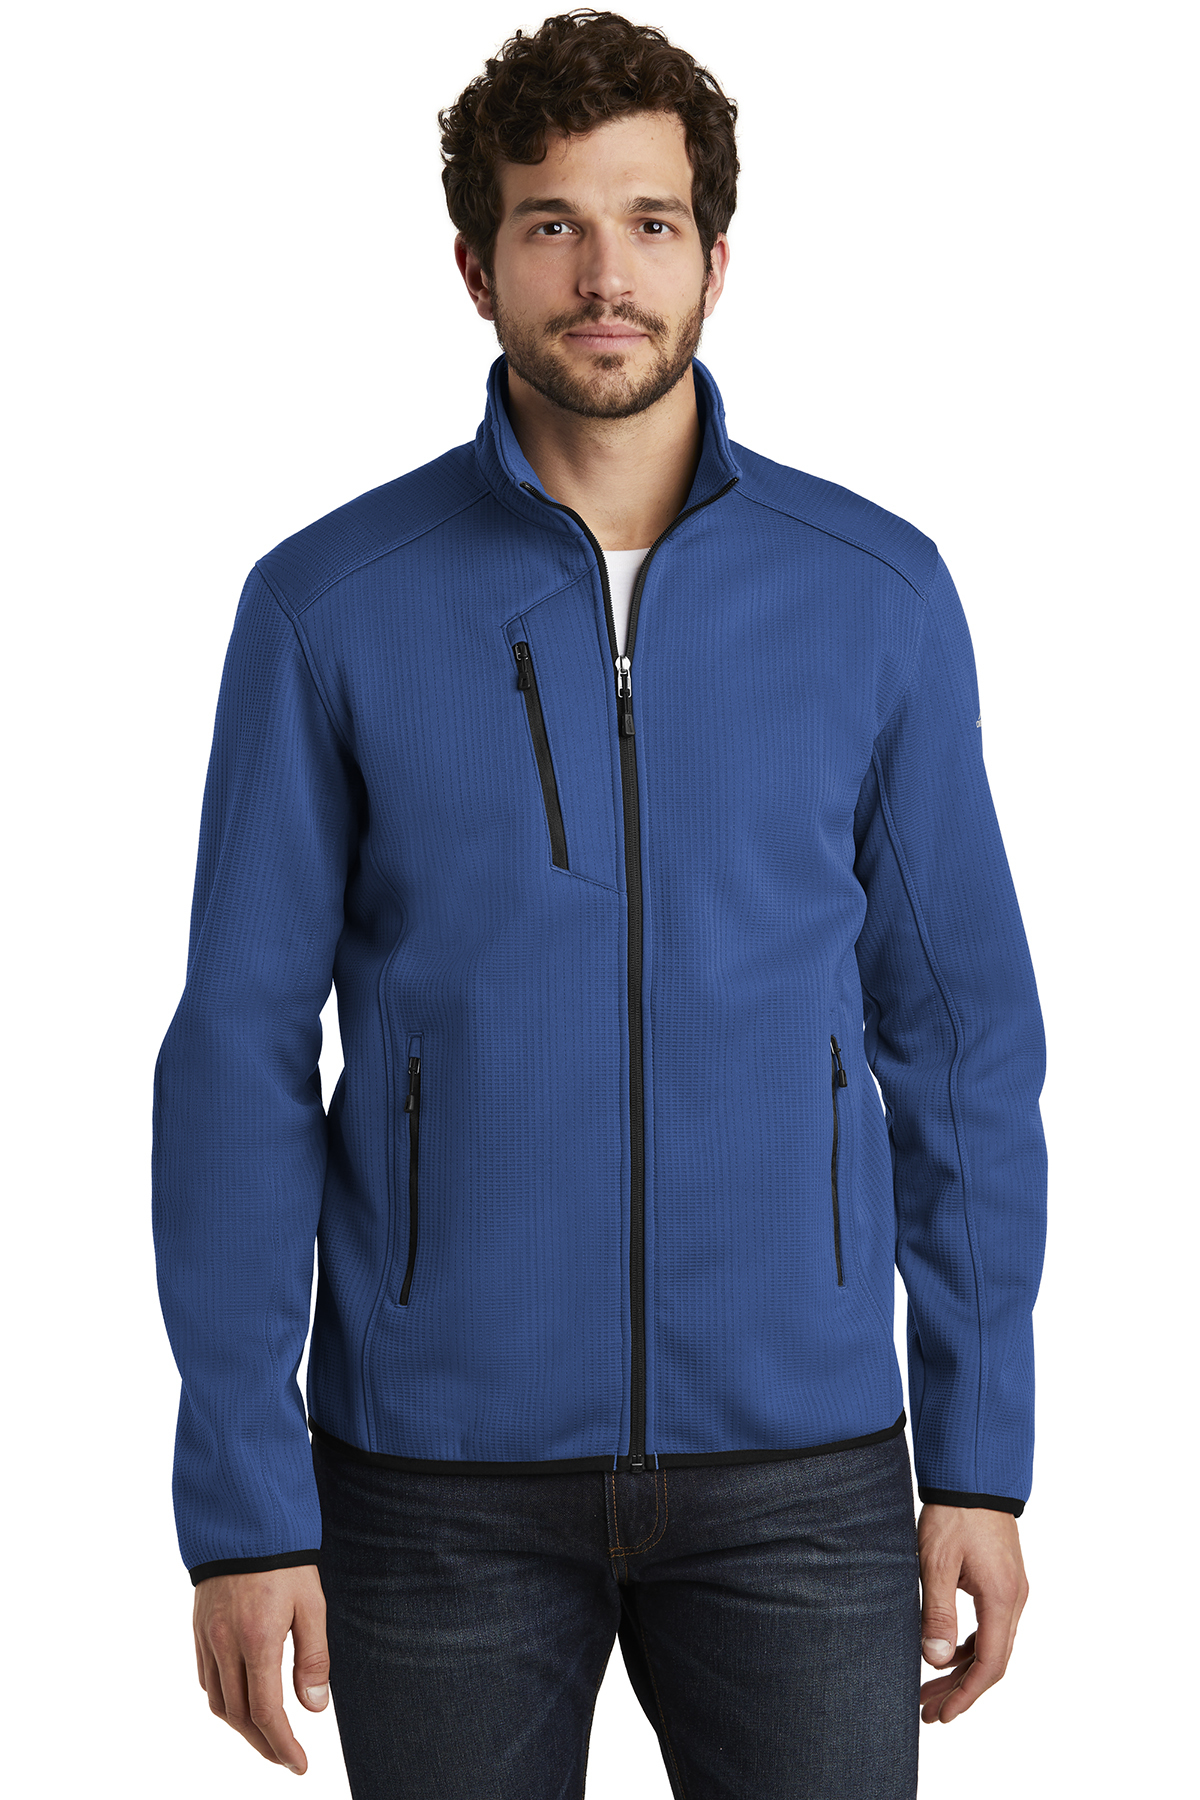 Eddie Bauer EB242 - Men's Dash Full-Zip Fleece Jacket